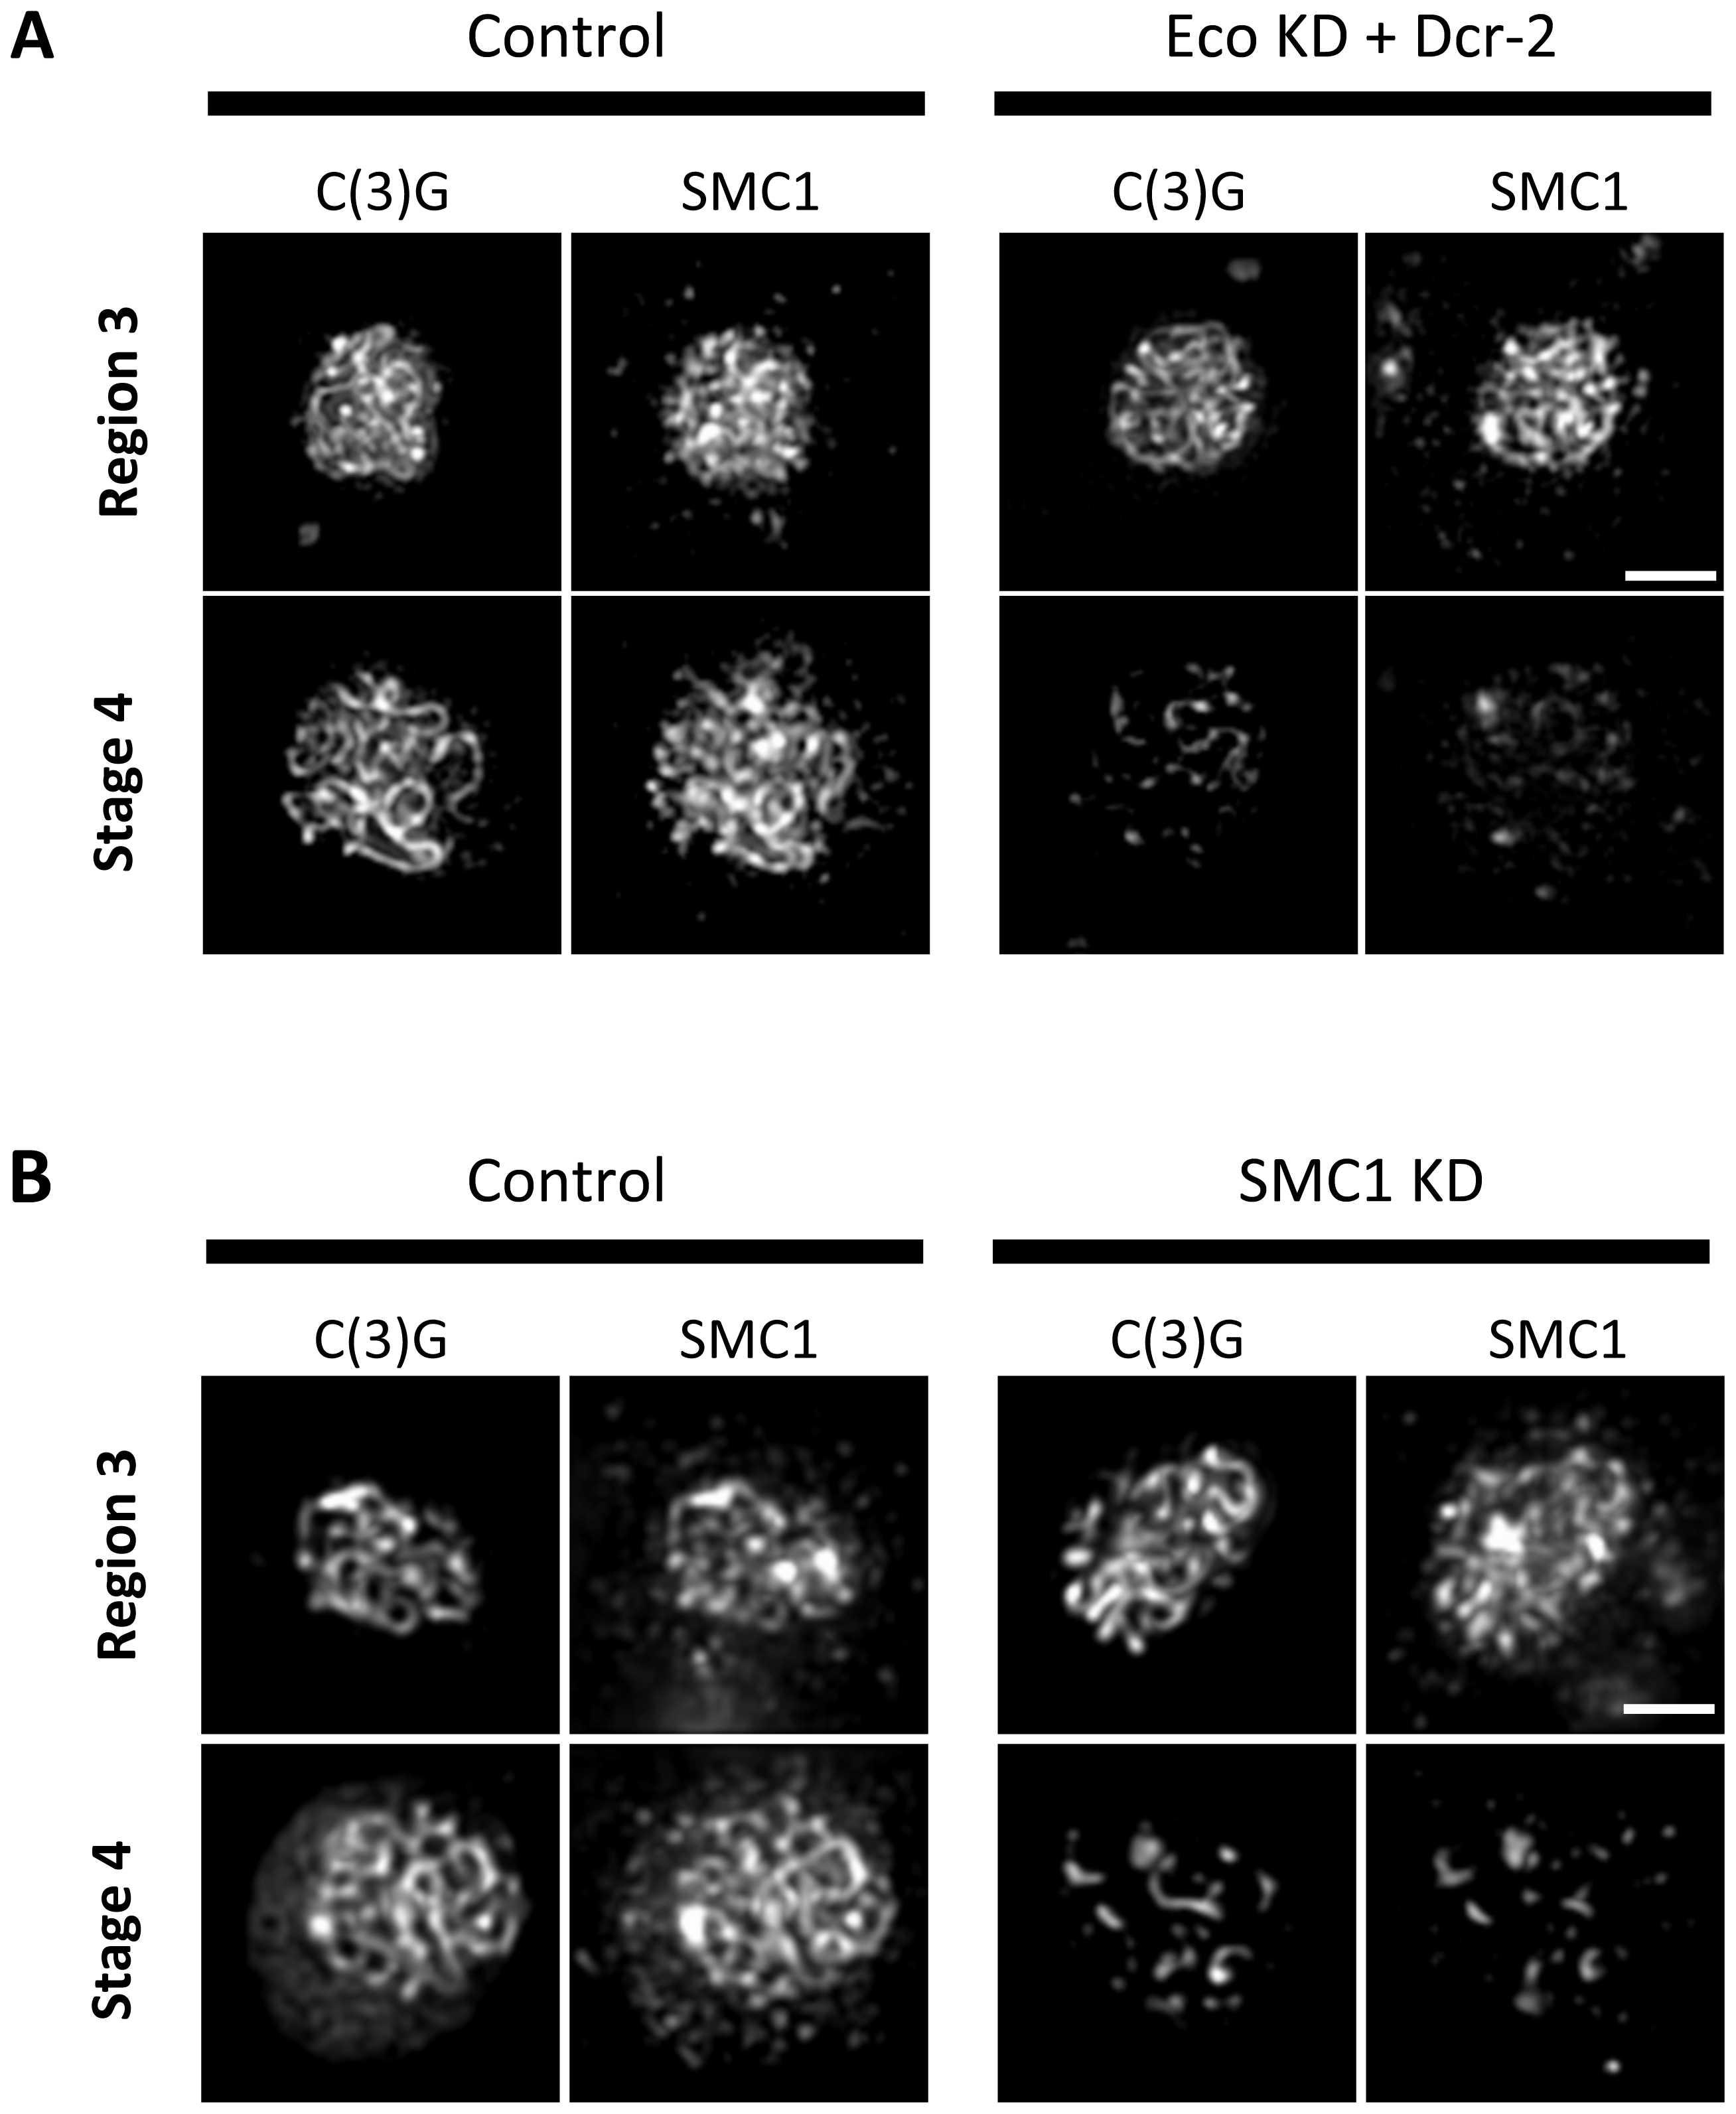 Maintenance of chromosome cores during pachytene requires Eco activity and synthesis of SMC1.